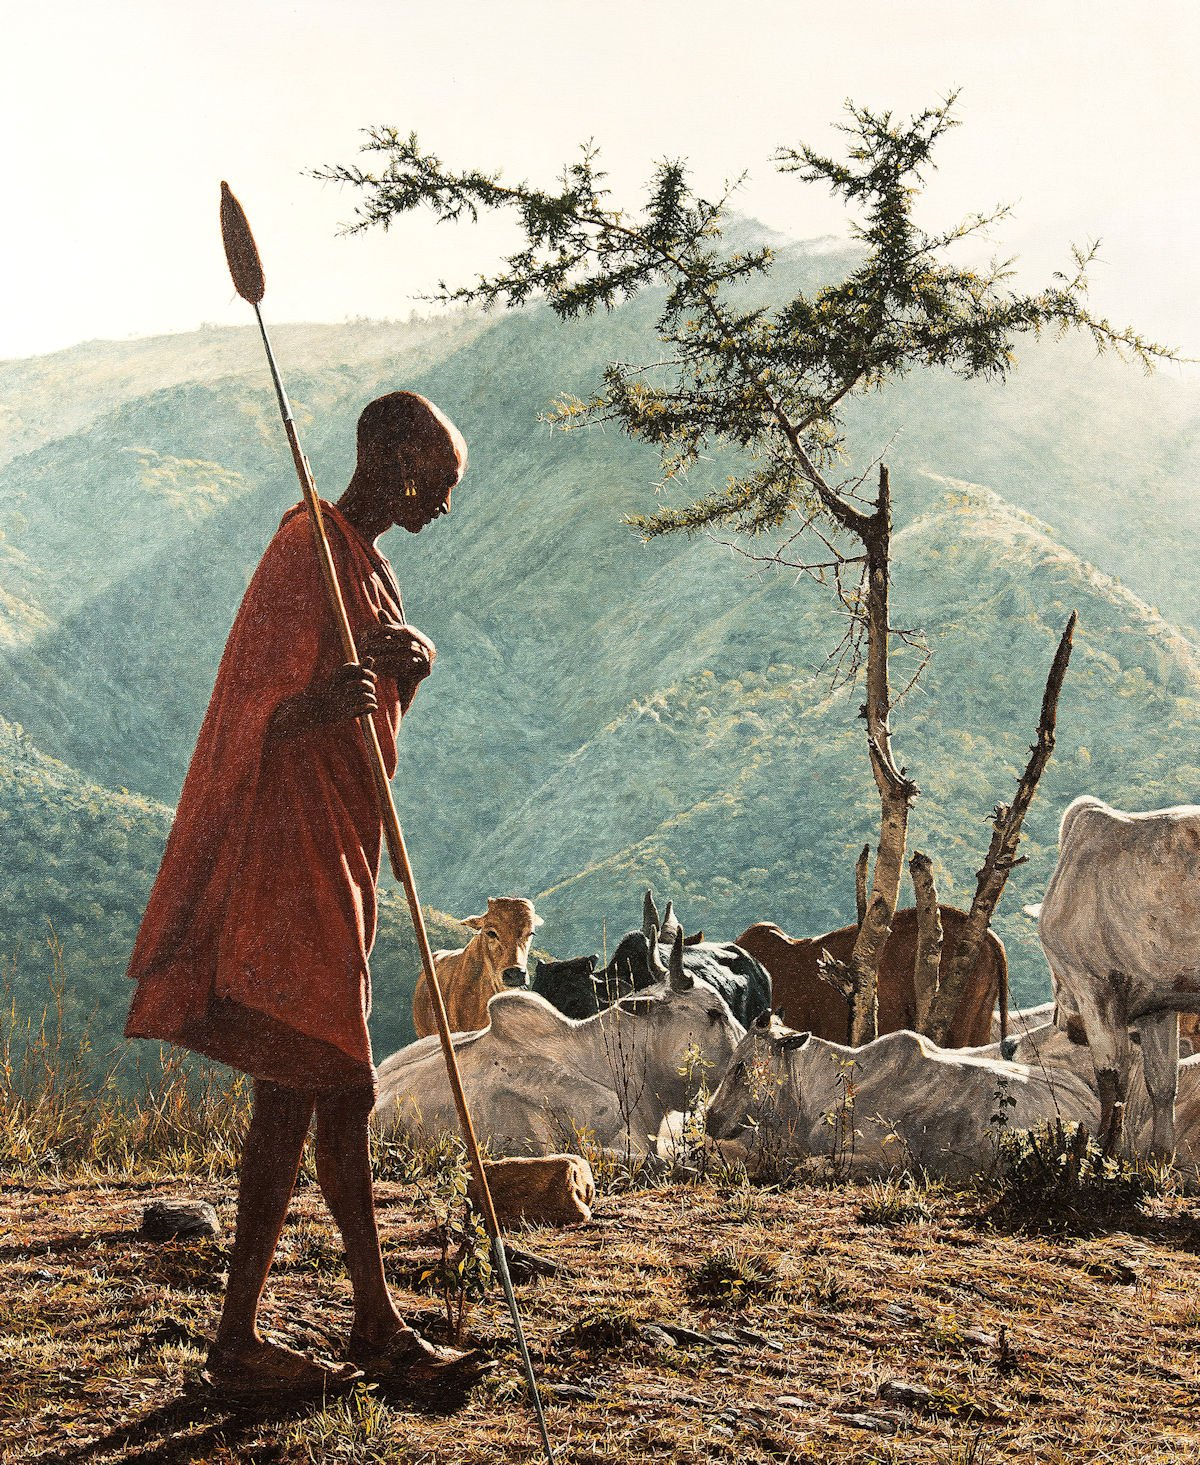 An african person looks after cattle in the mountains by Simon Coombes